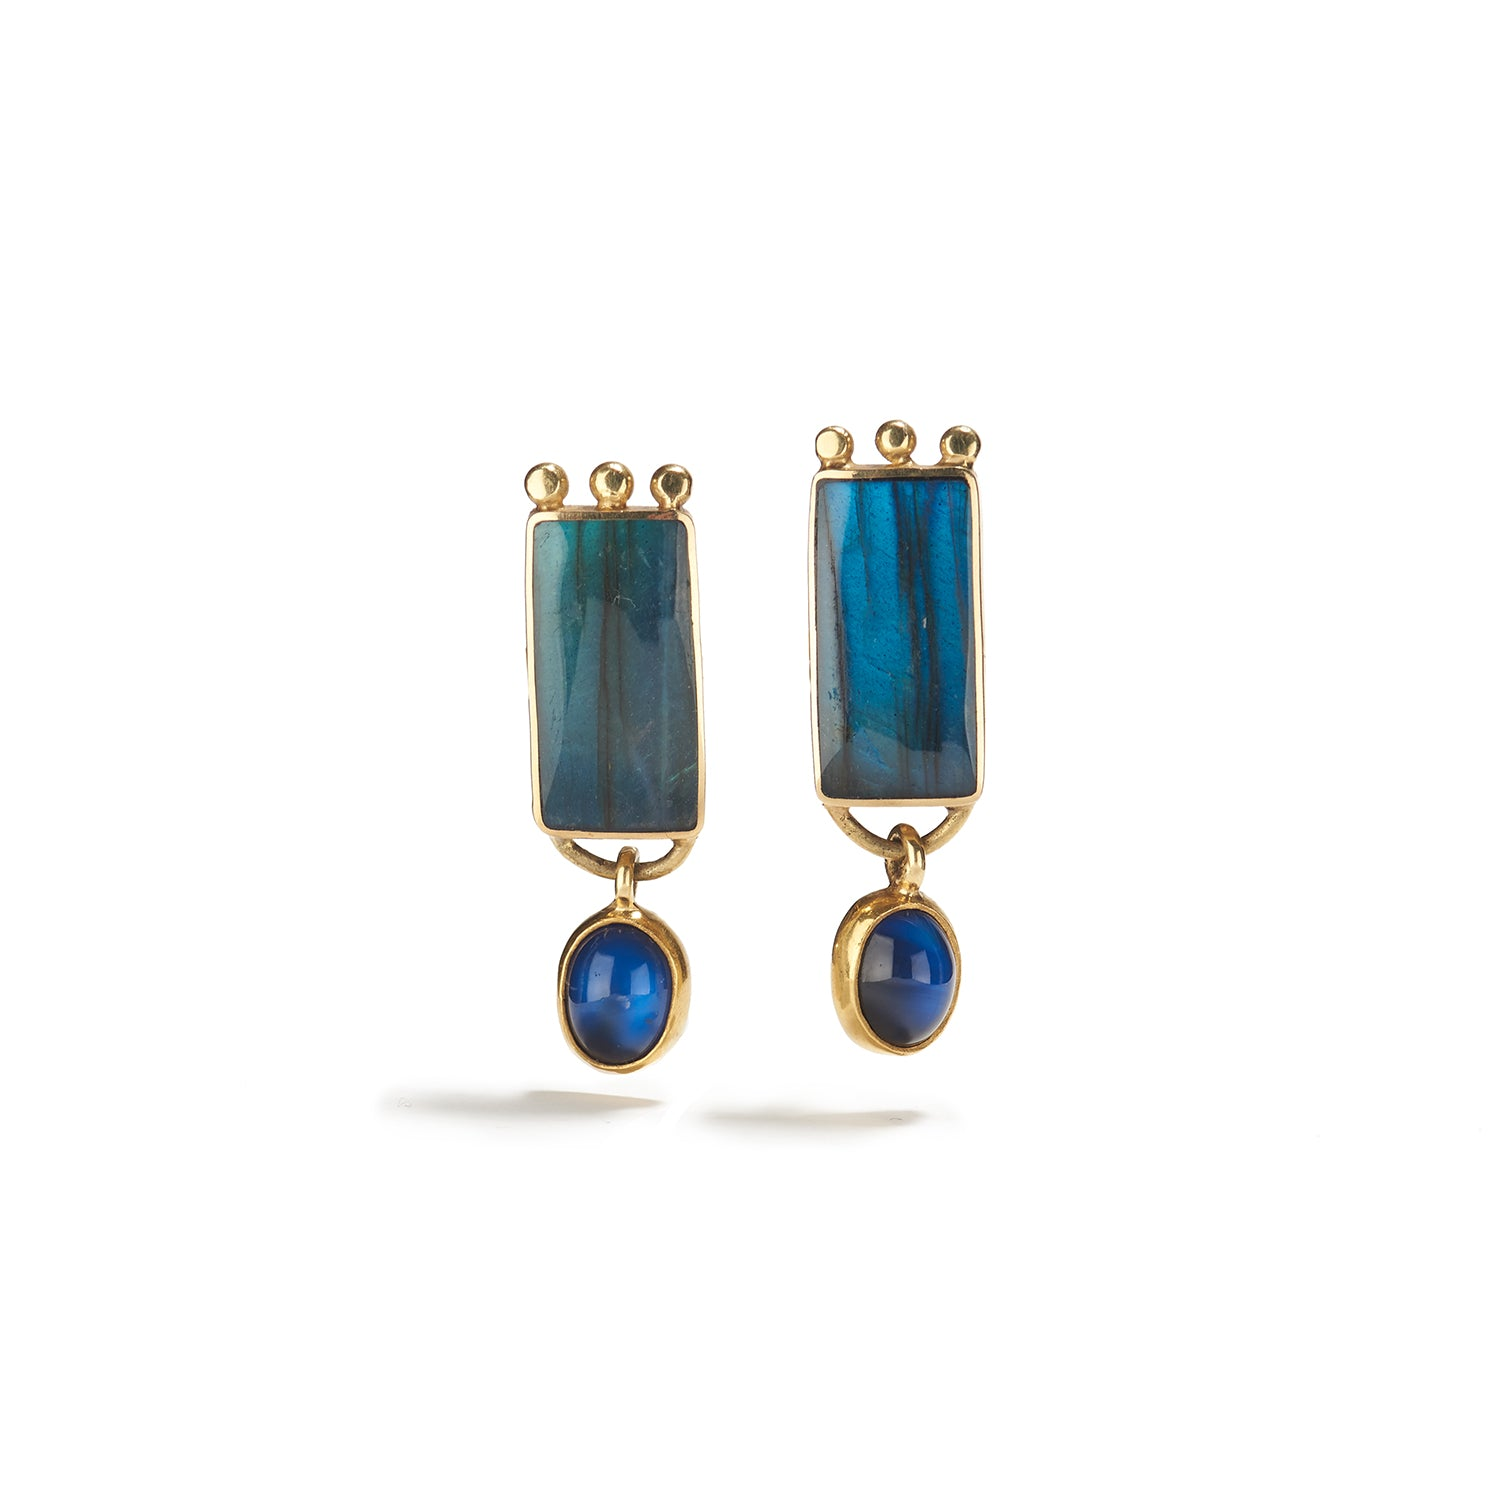 Earrings in Gold, Labradorite & Moonstone